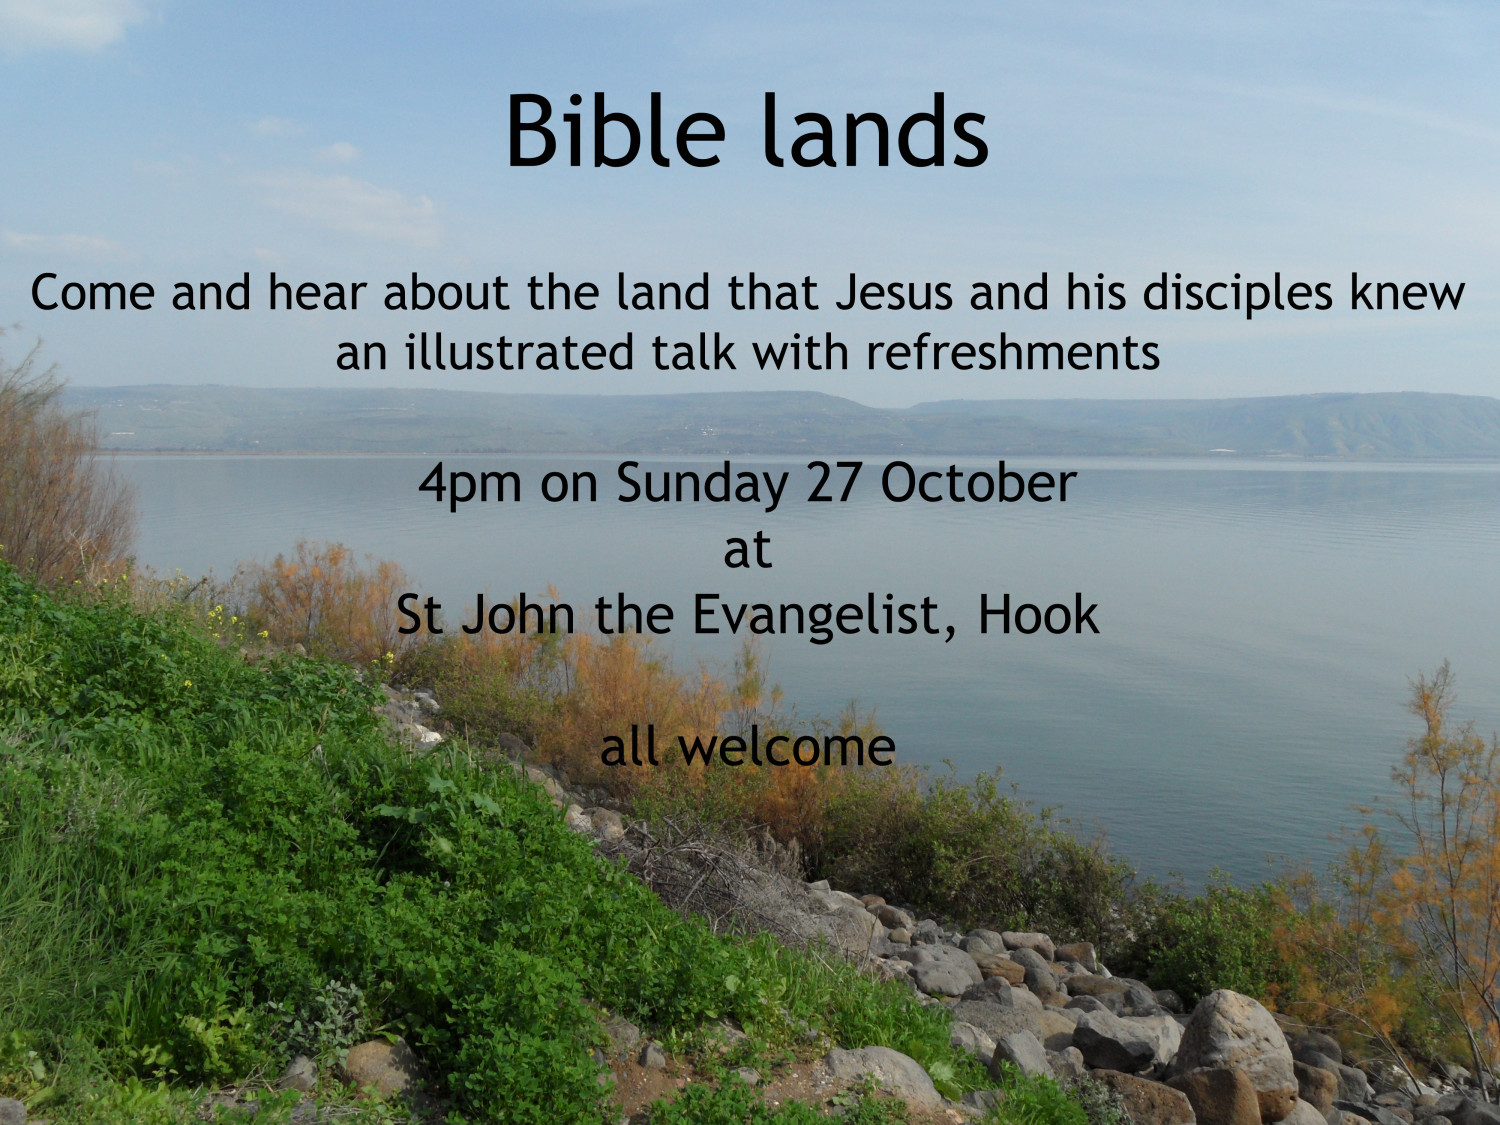 Bible Lands - illustrated talk at St Johns on Sunday 27th Oct at 4pm